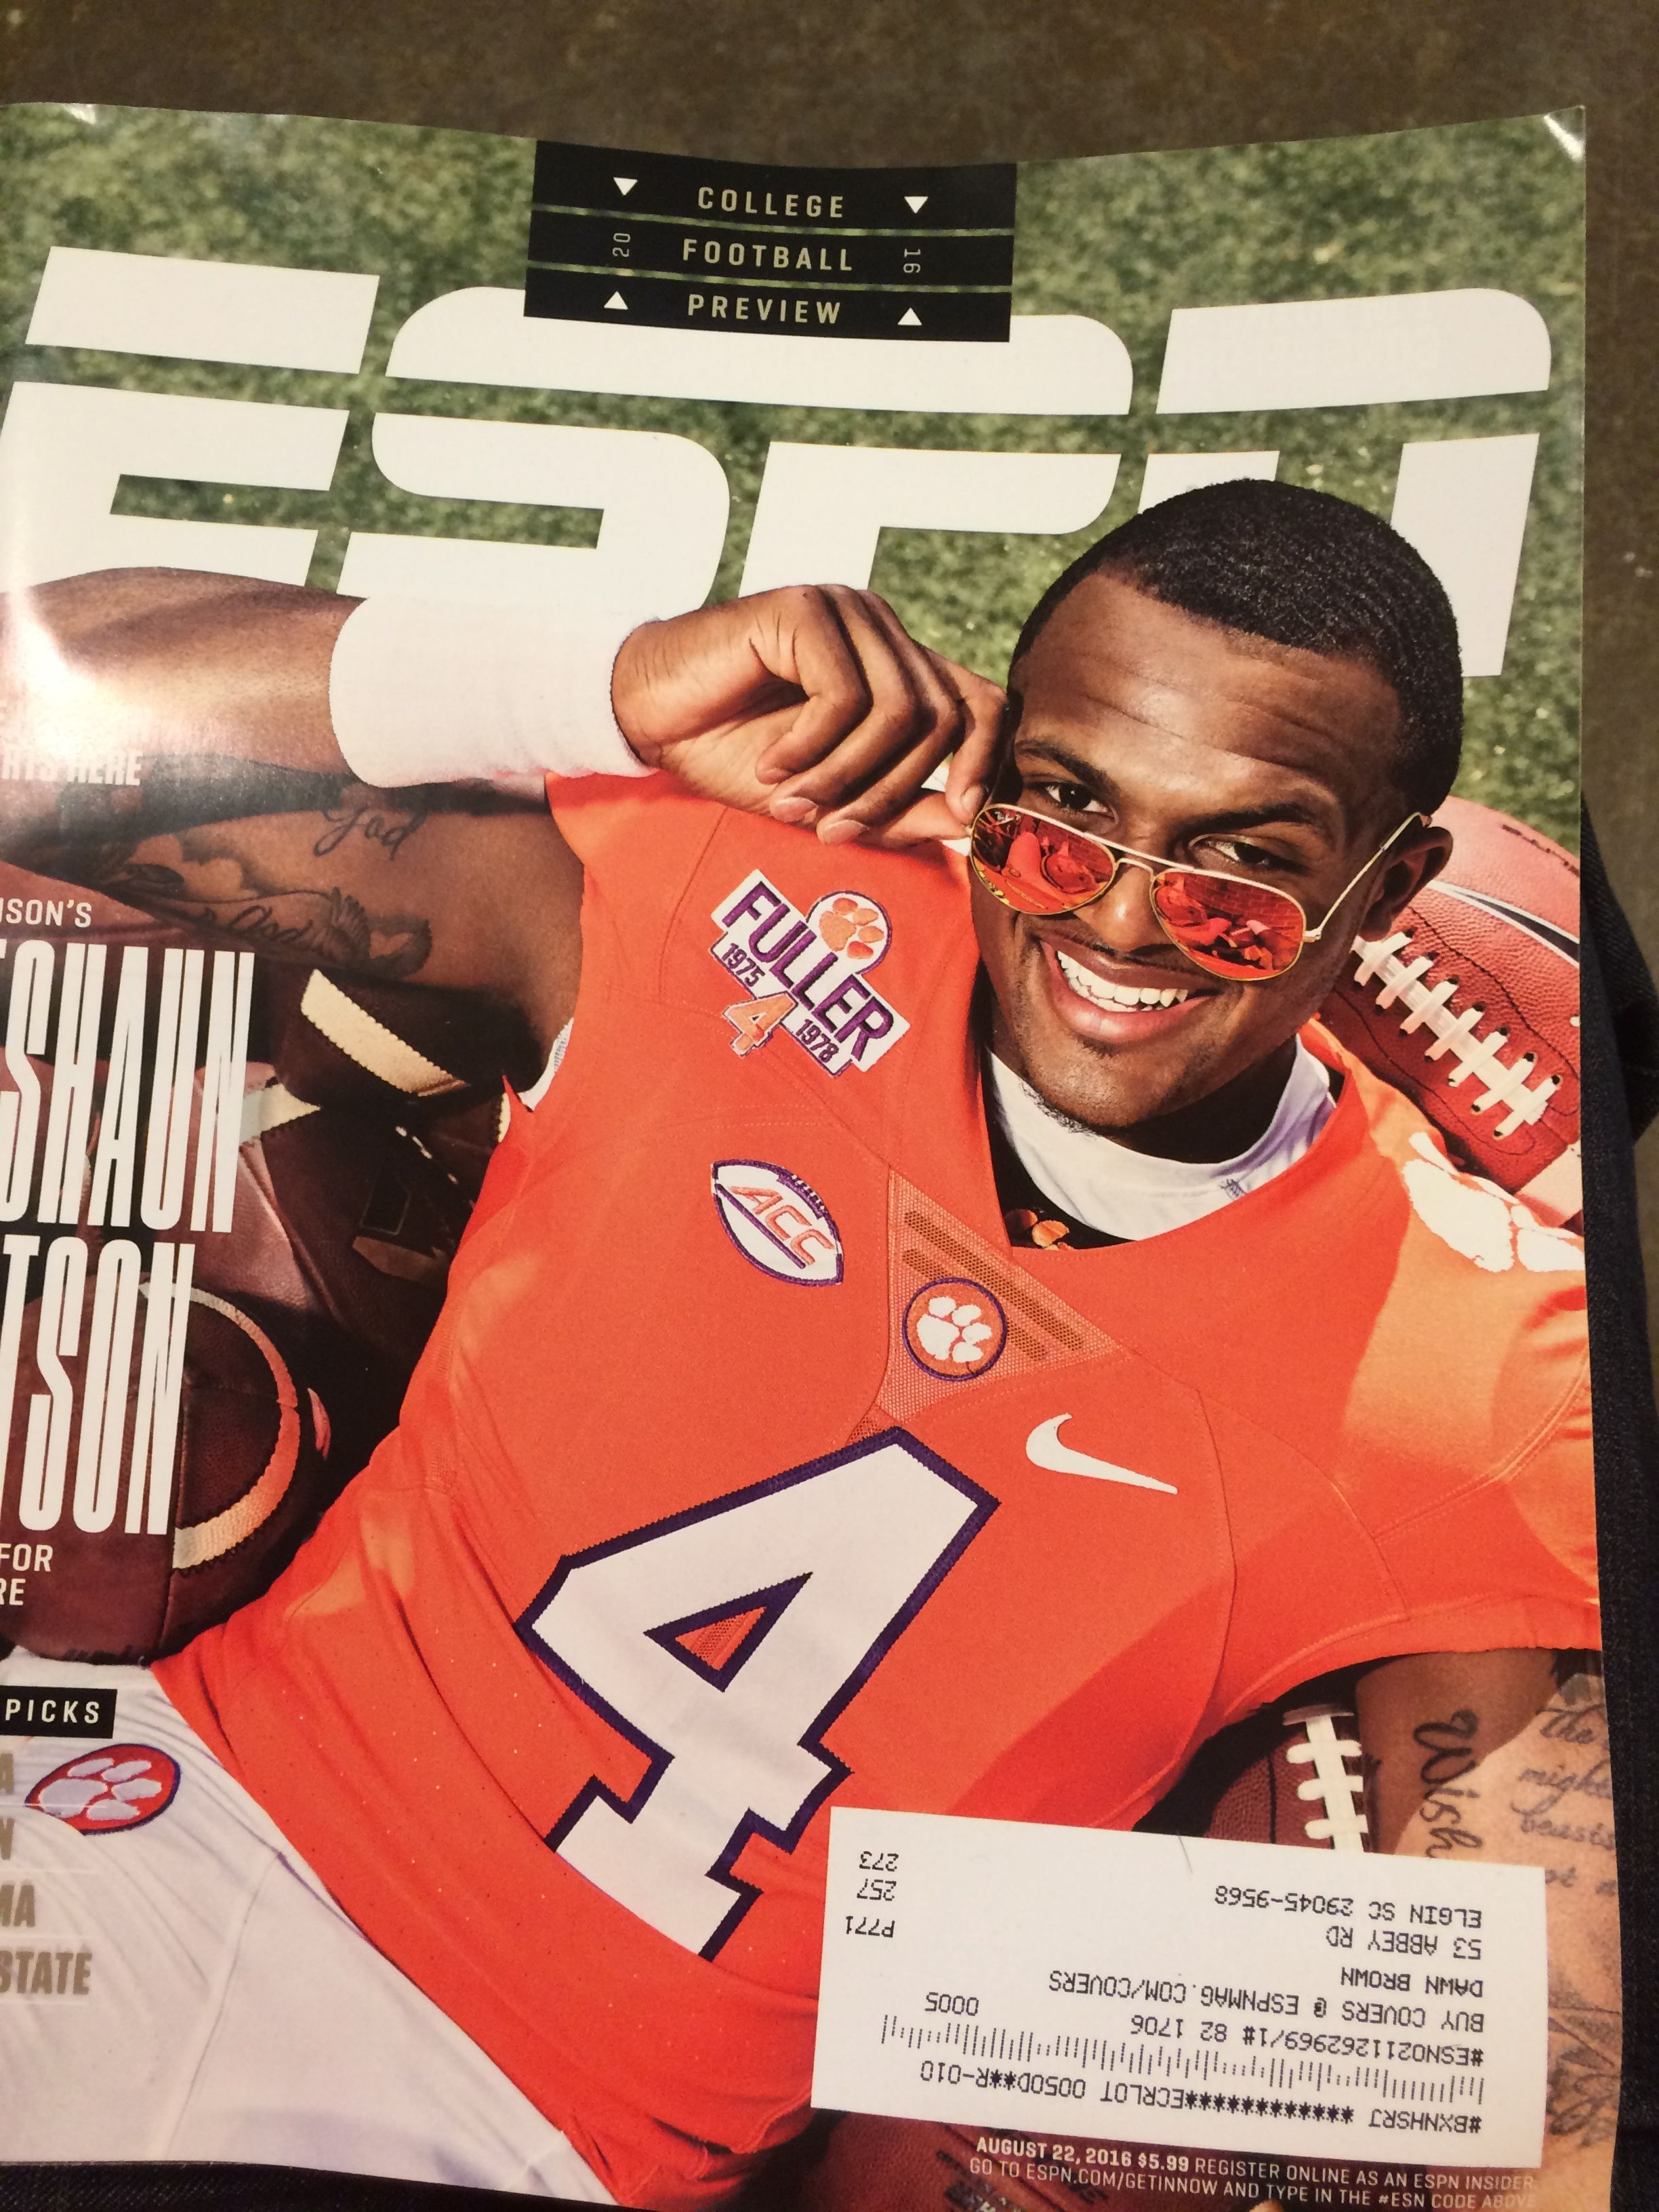 College Football Preview issue 2016